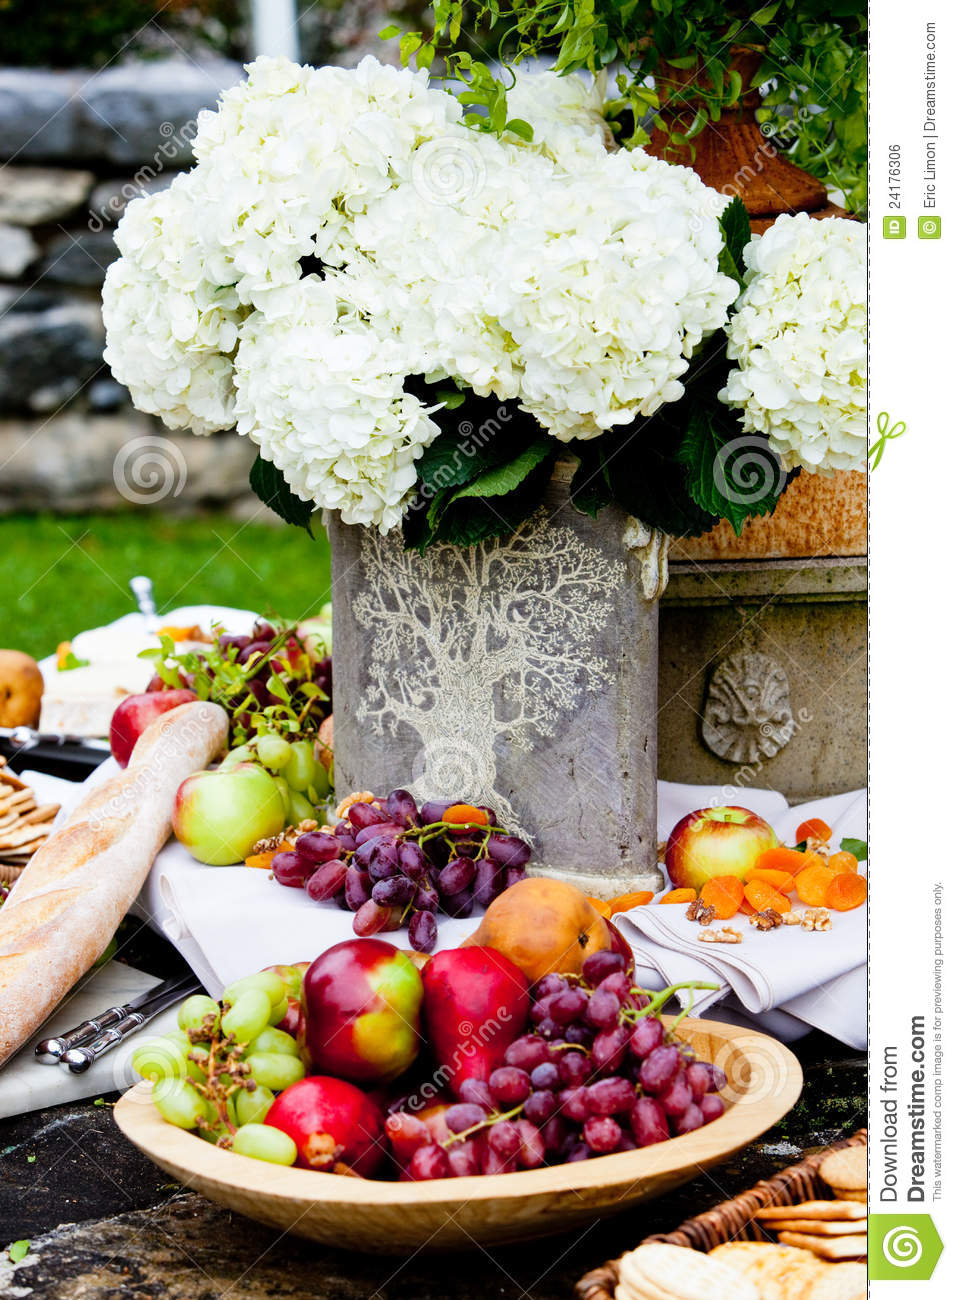 Banquet Food Royalty Free Stock Image   Image  24176306